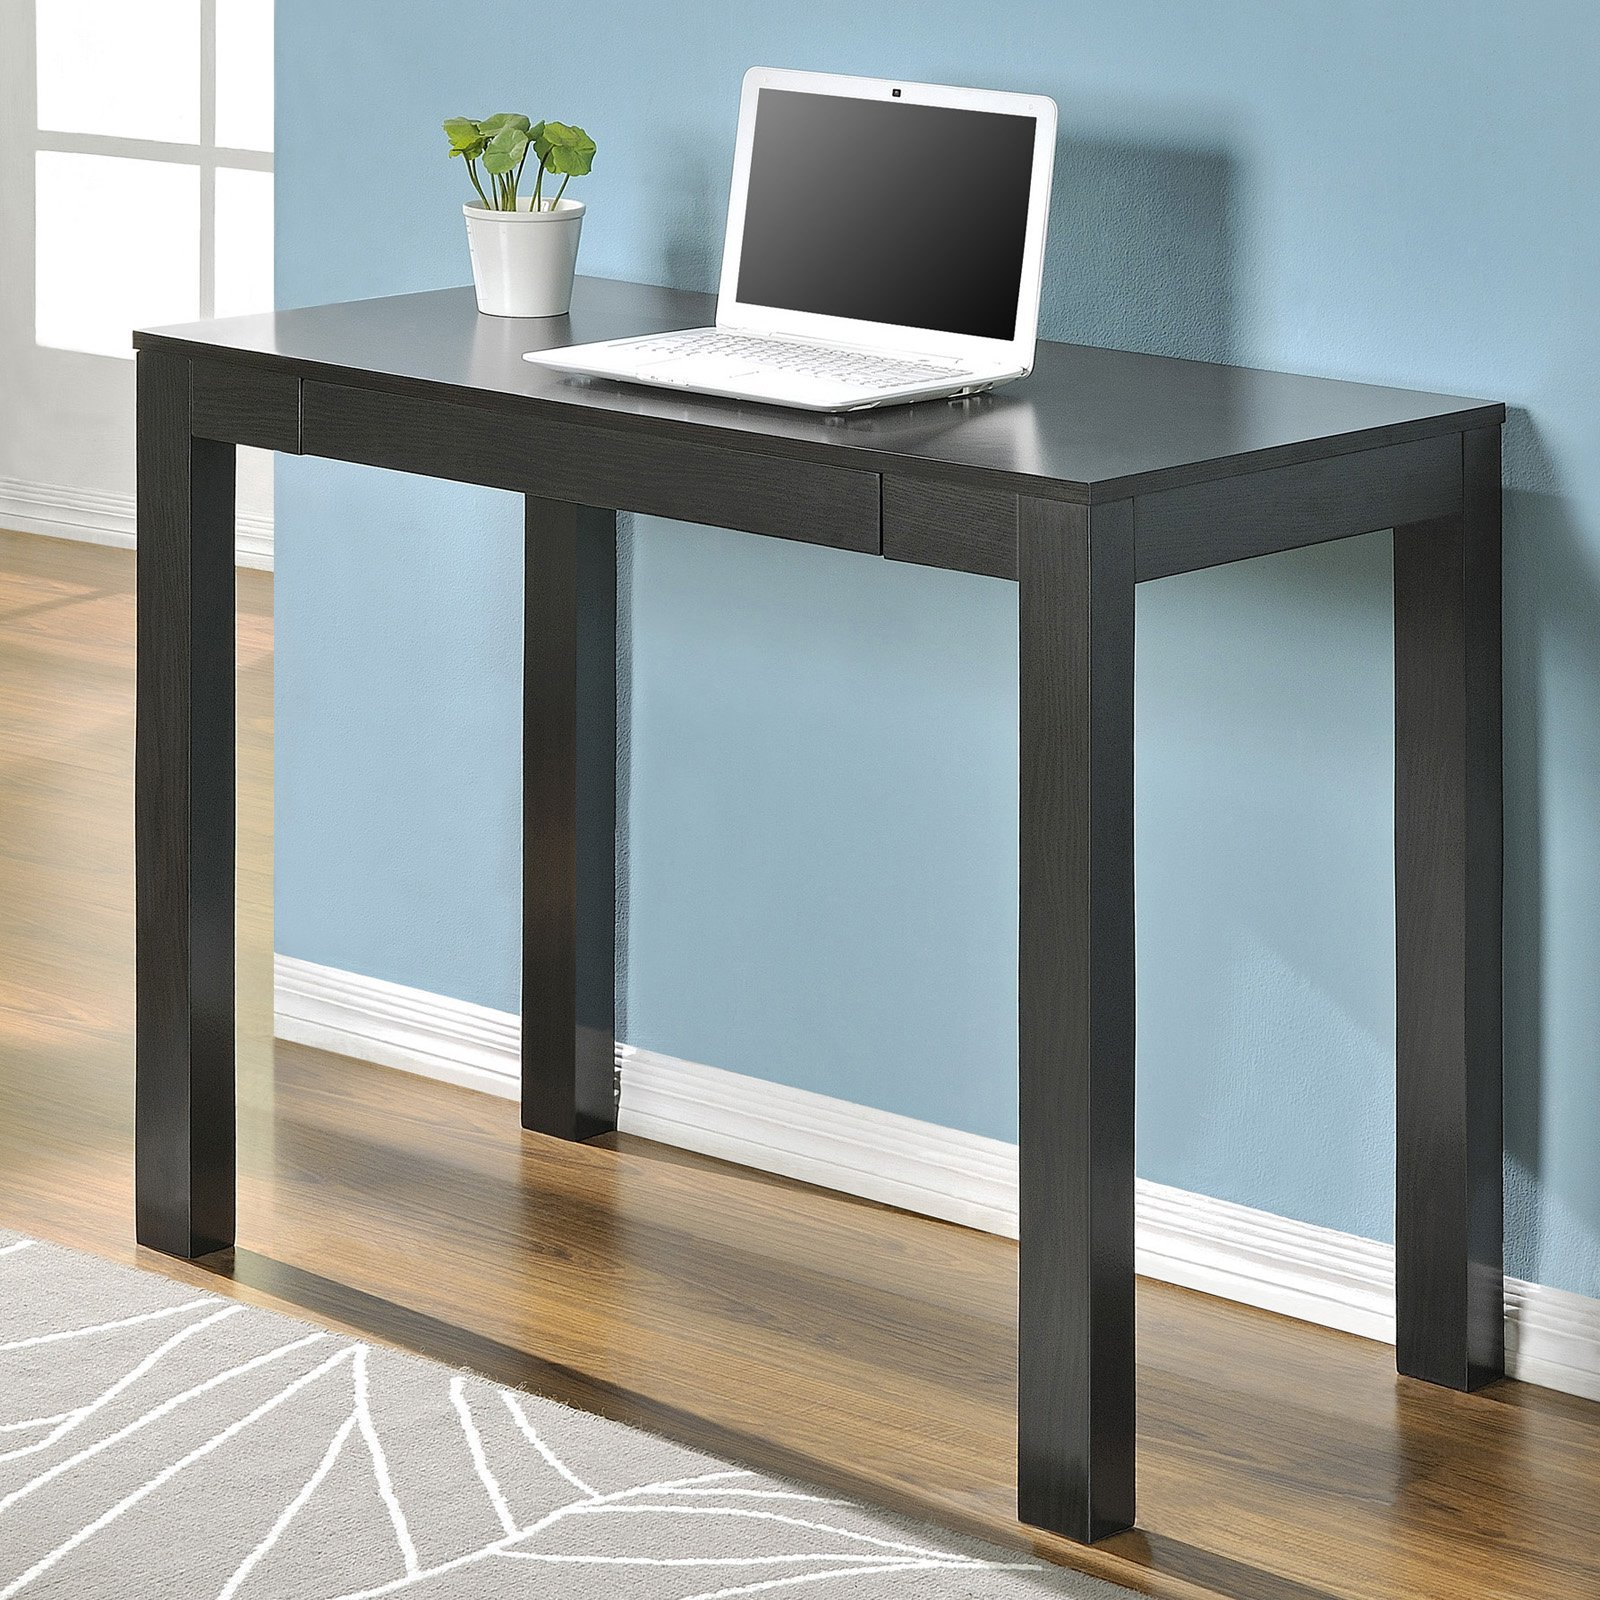 Parsons Table Desk With Drawers: Ameriwood Parsons Desk With Drawer, Espresso Finish